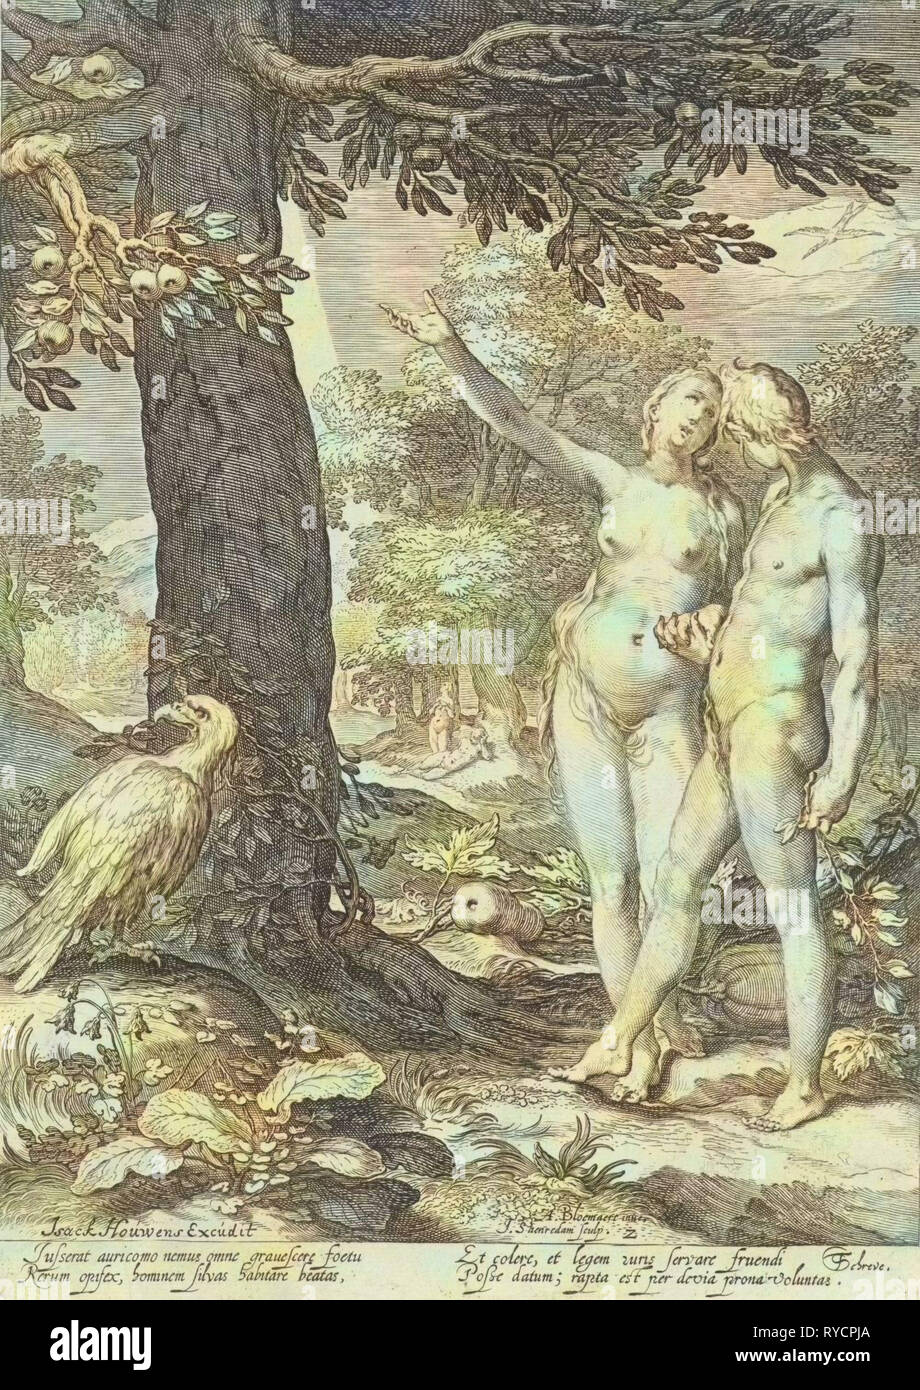 Adam and Eve before the Tree of Knowledge of Good and Evil, print maker: Jan Saenredam, Abraham Bloemaert, Isack Houwens, 1604 and/or 1690 - 1750 - Stock Image